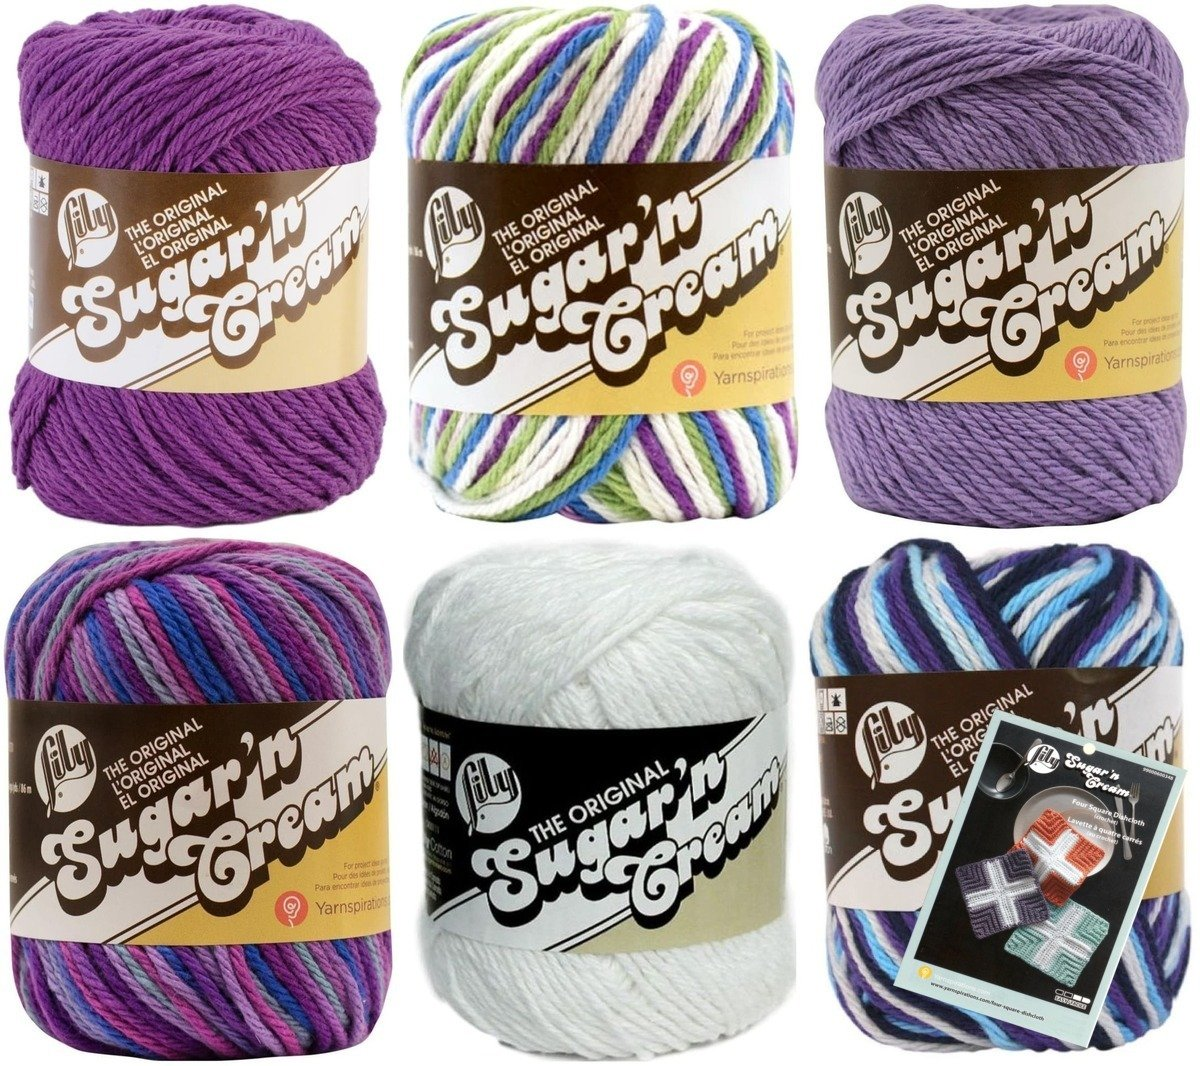 Variety Assortment Lily Sugar'n Cream Yarn 100 Percent Cotton Solids and Ombres (6-Pack) Medium Number 4 Worsted Bundle with Four Square Dishcloth Pattern Spinrite® 10200